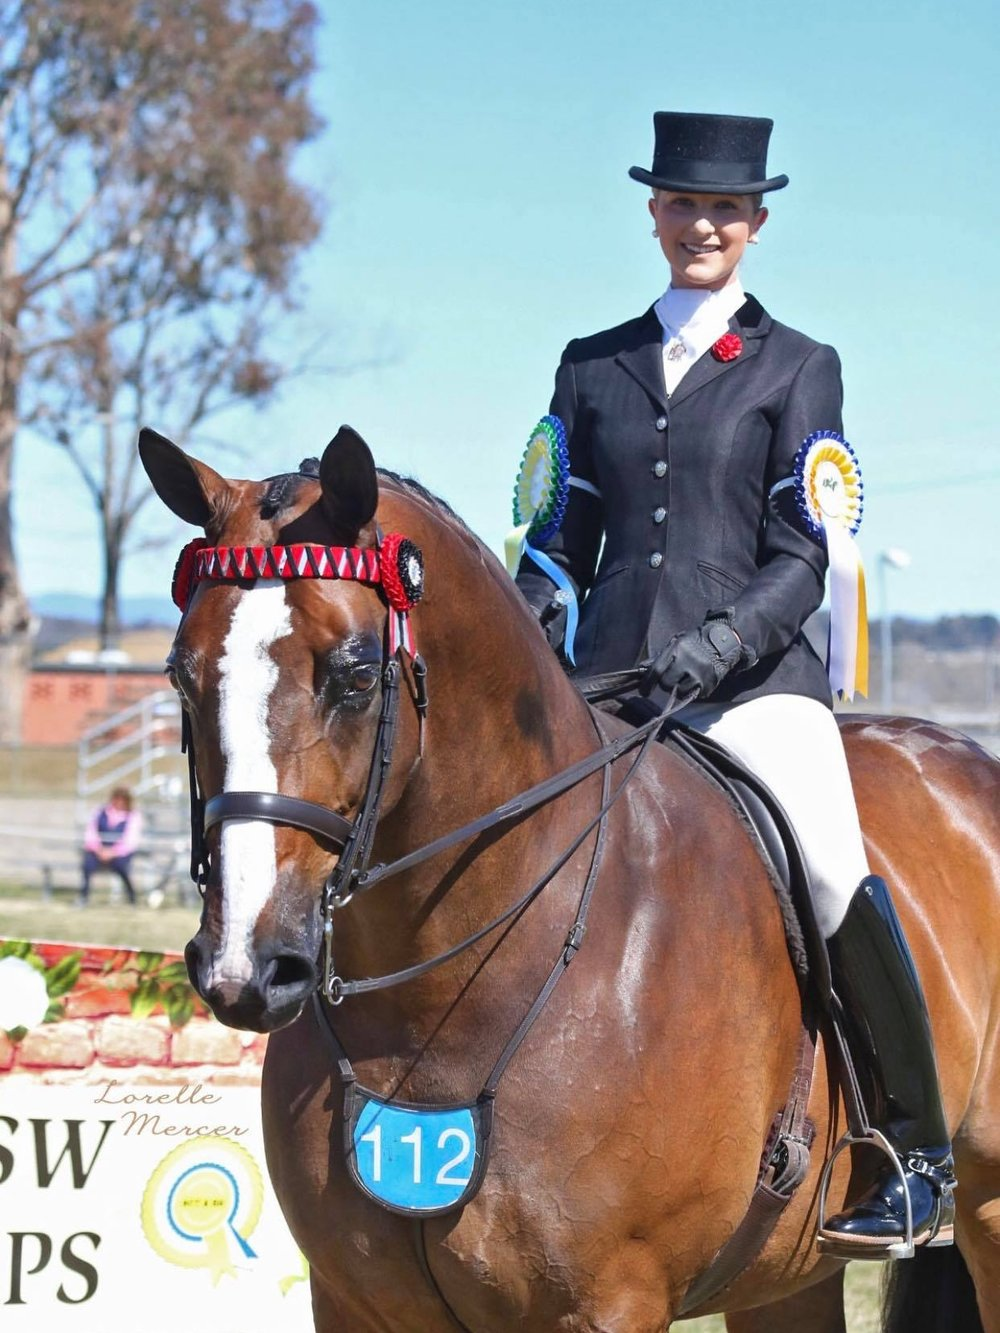 ACT and SOUTHERN NSW Hack Championships Runner Up Rider - Photo Credit Lorelle Mercer